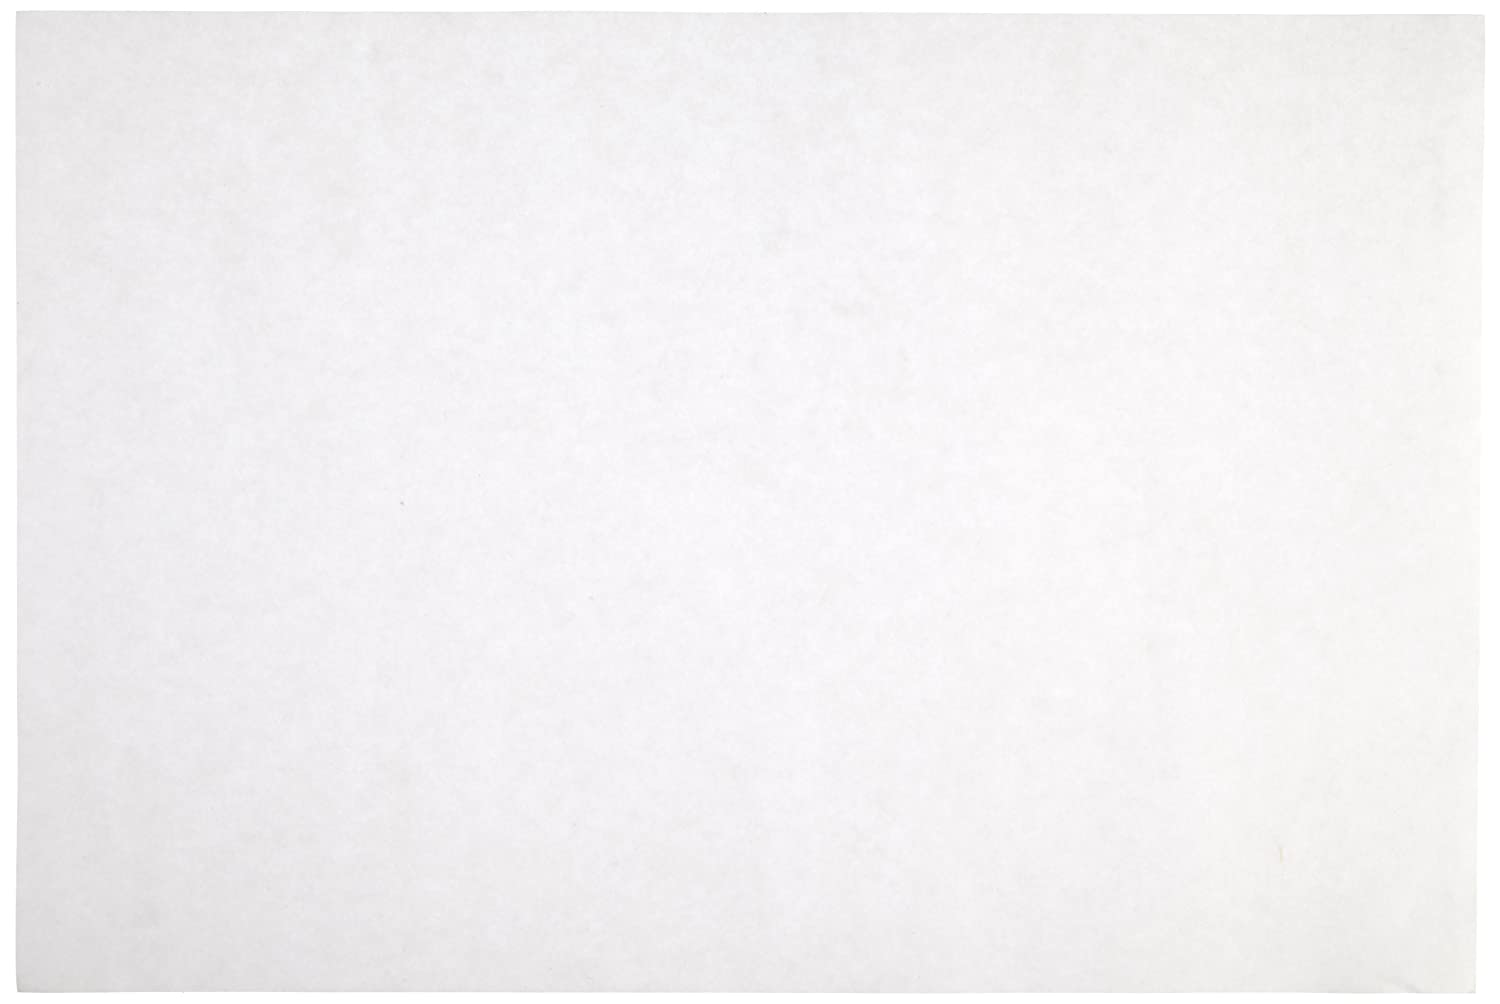 Sax Drawing Paper - 80 pound - 9 x 12 inches - 500 Sheets - White 053943